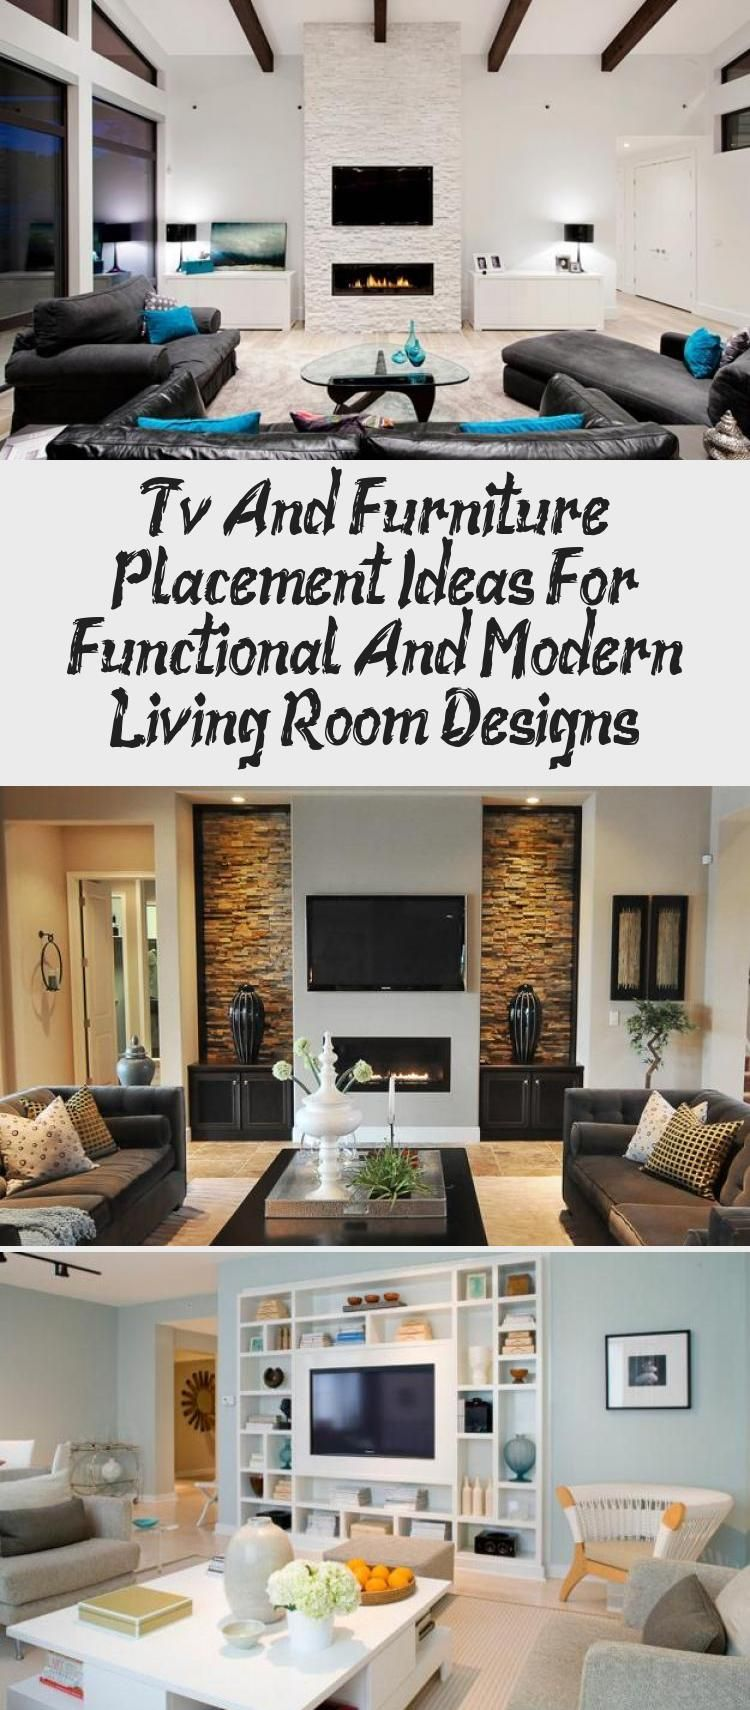 En Blog En Blog In 2020 Furniture Placement Living Room Living Room Design Modern Living Room Floor Plans